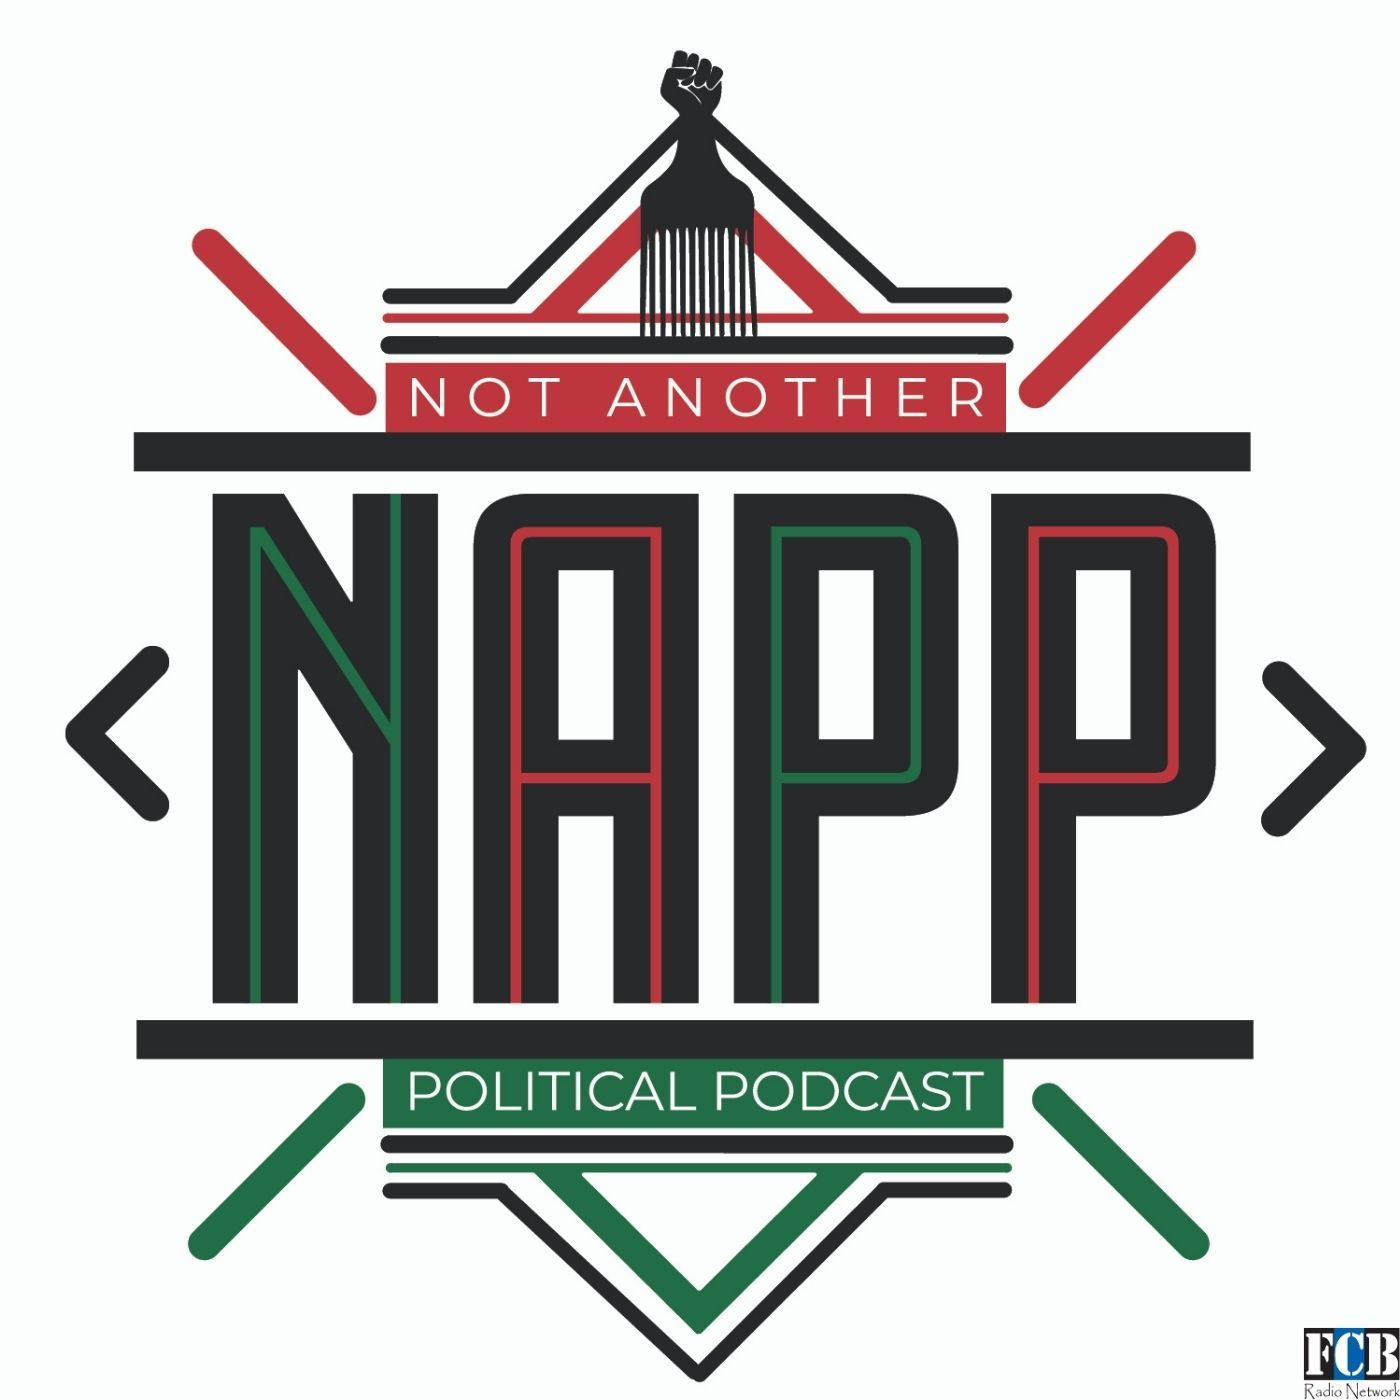 Not Another Political Podcast